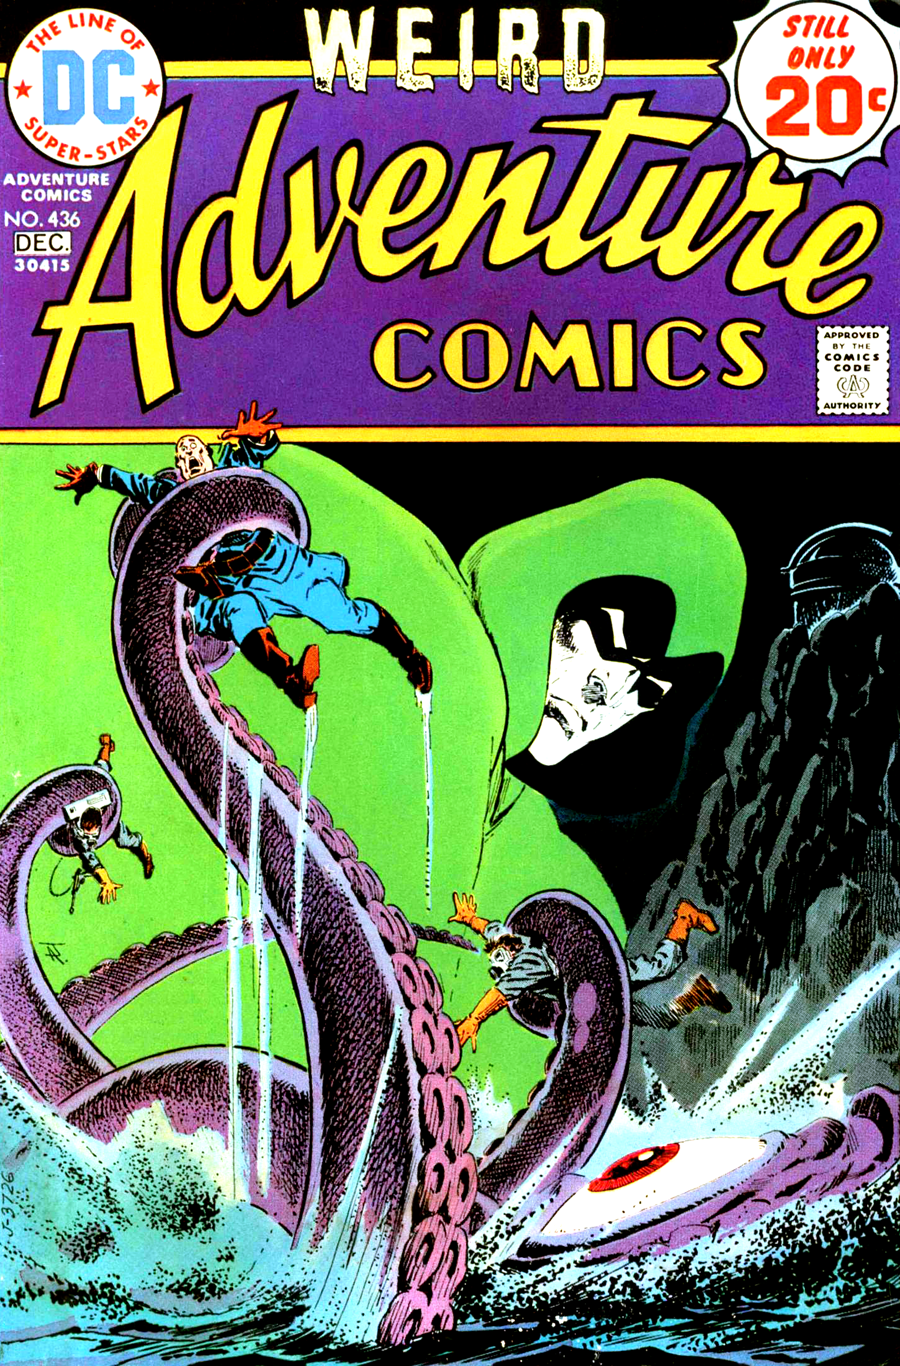 Adventure Comics #436 cover by Jim Aparo